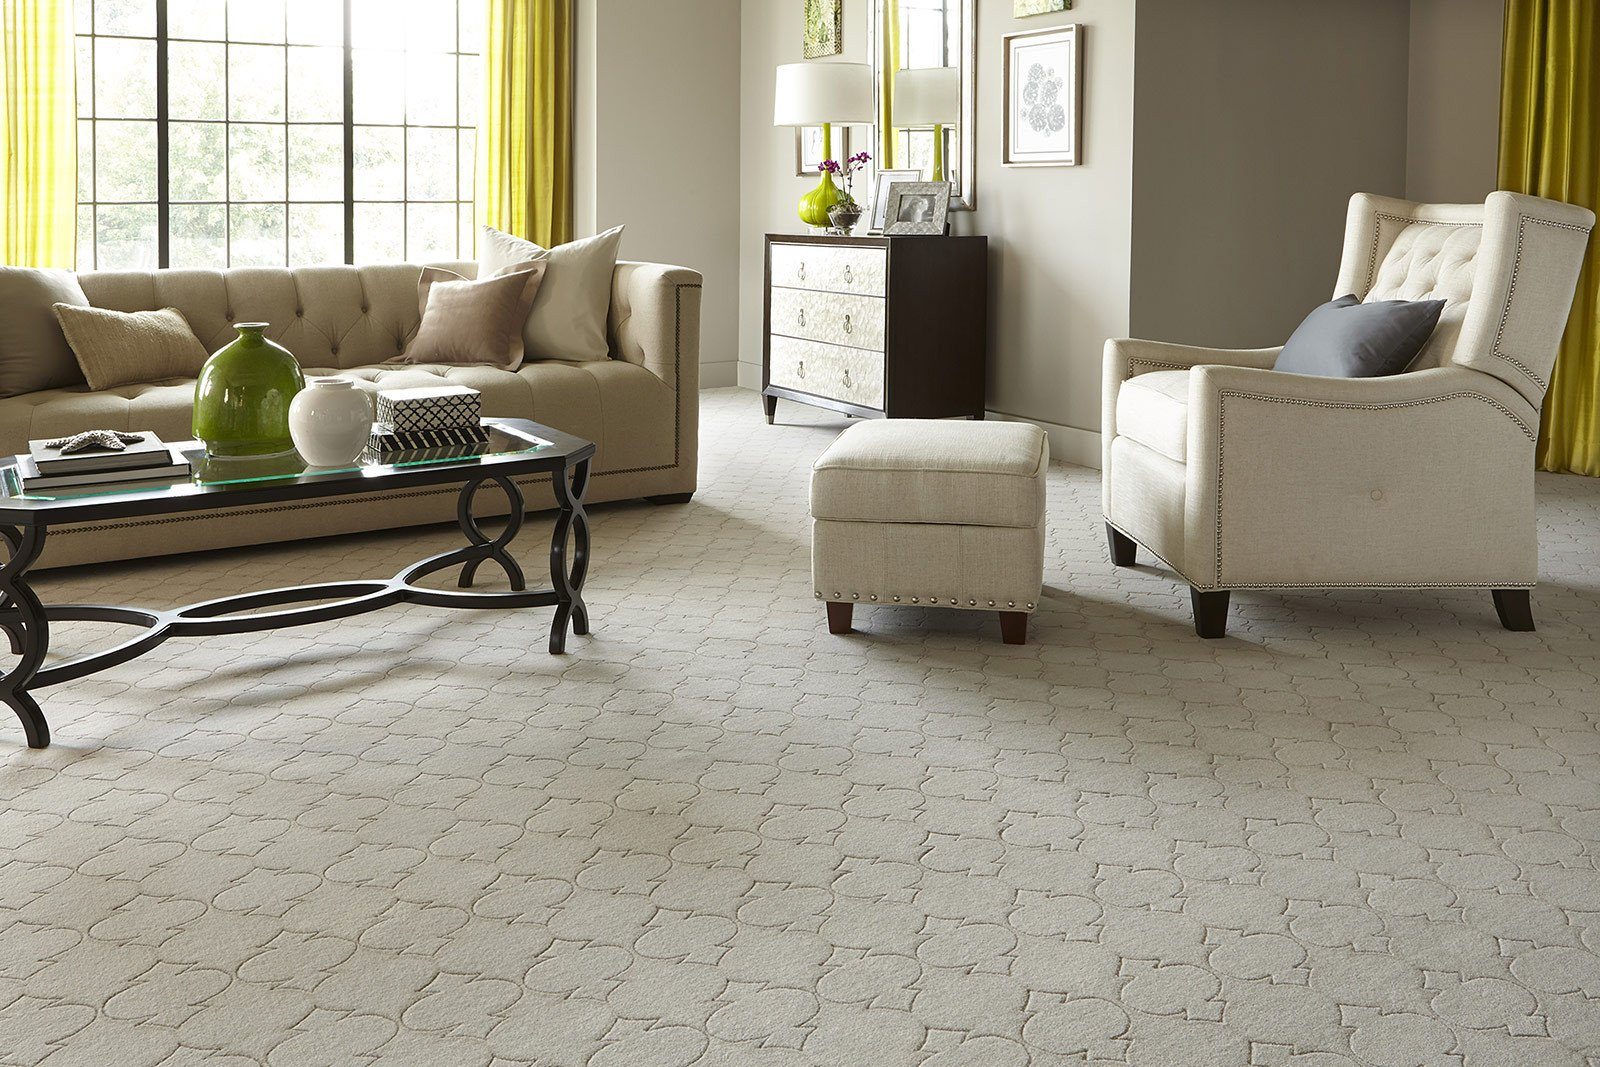 Carpet for Living Room Ideas Best Of 10 Easy to Follow Design Ideas for Small Apartments